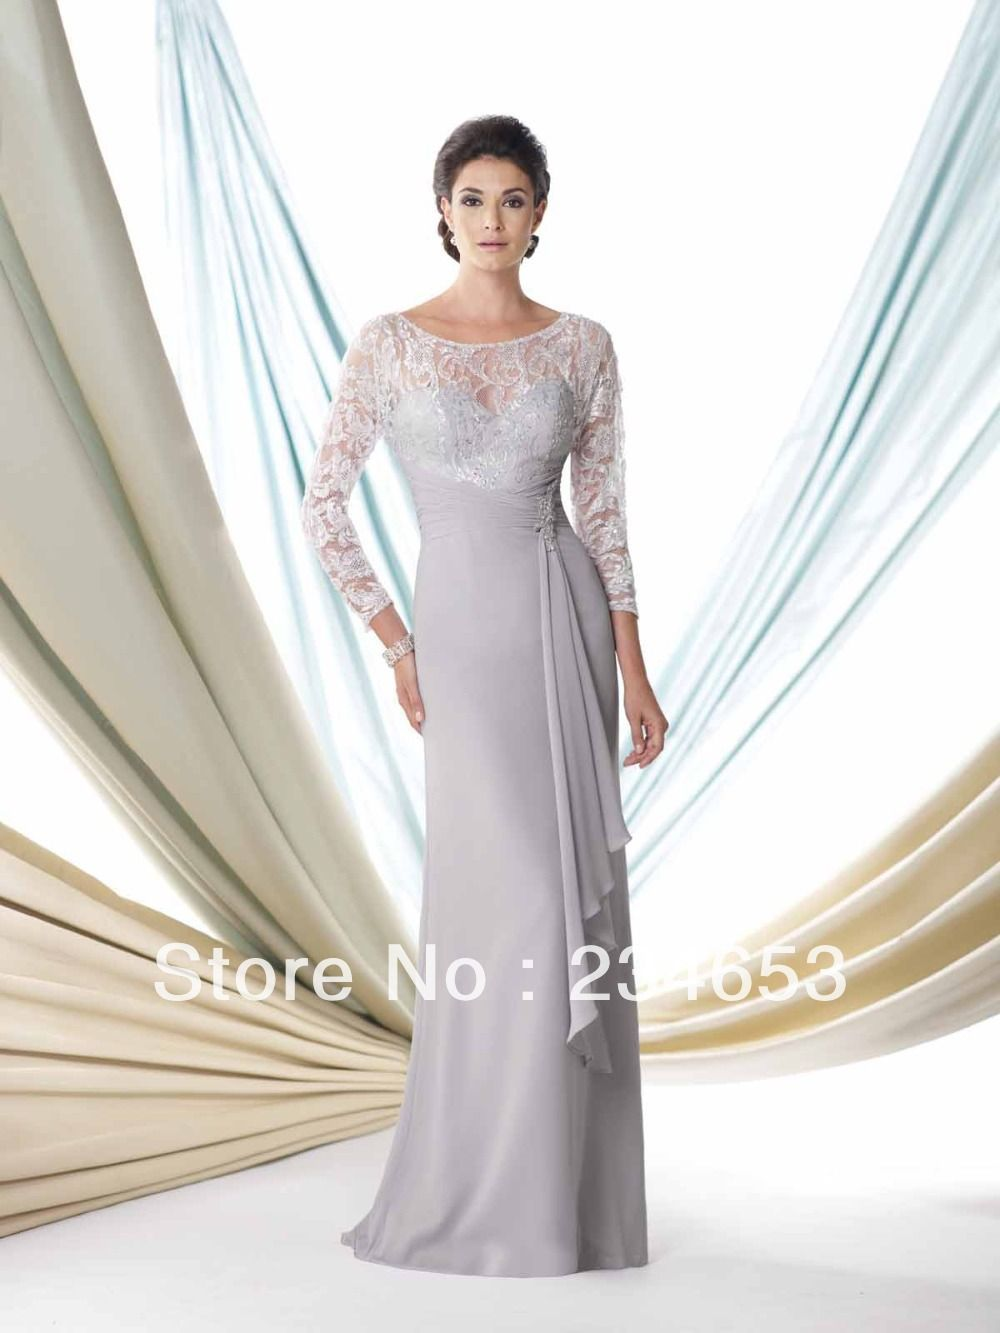 2017 Y Silver Lace Chiffon Trumpet Mother Of The Bride Dresses With Long Sleeve Bolero Jacket